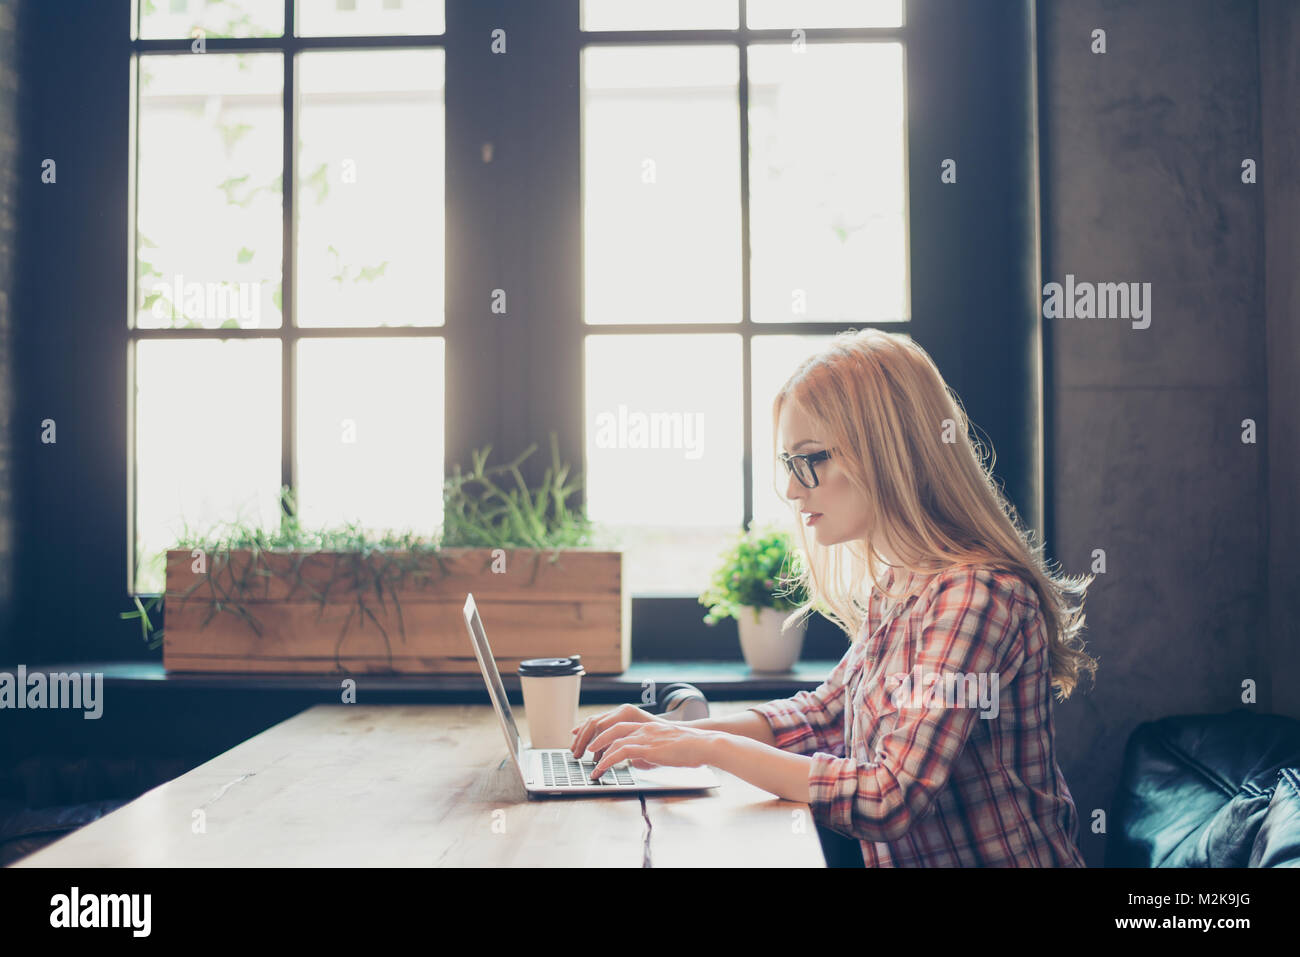 Side profile half-faced photo of busy concentrated smart clever beautiful woman wearing checkered shirt and glasses, - Stock Image